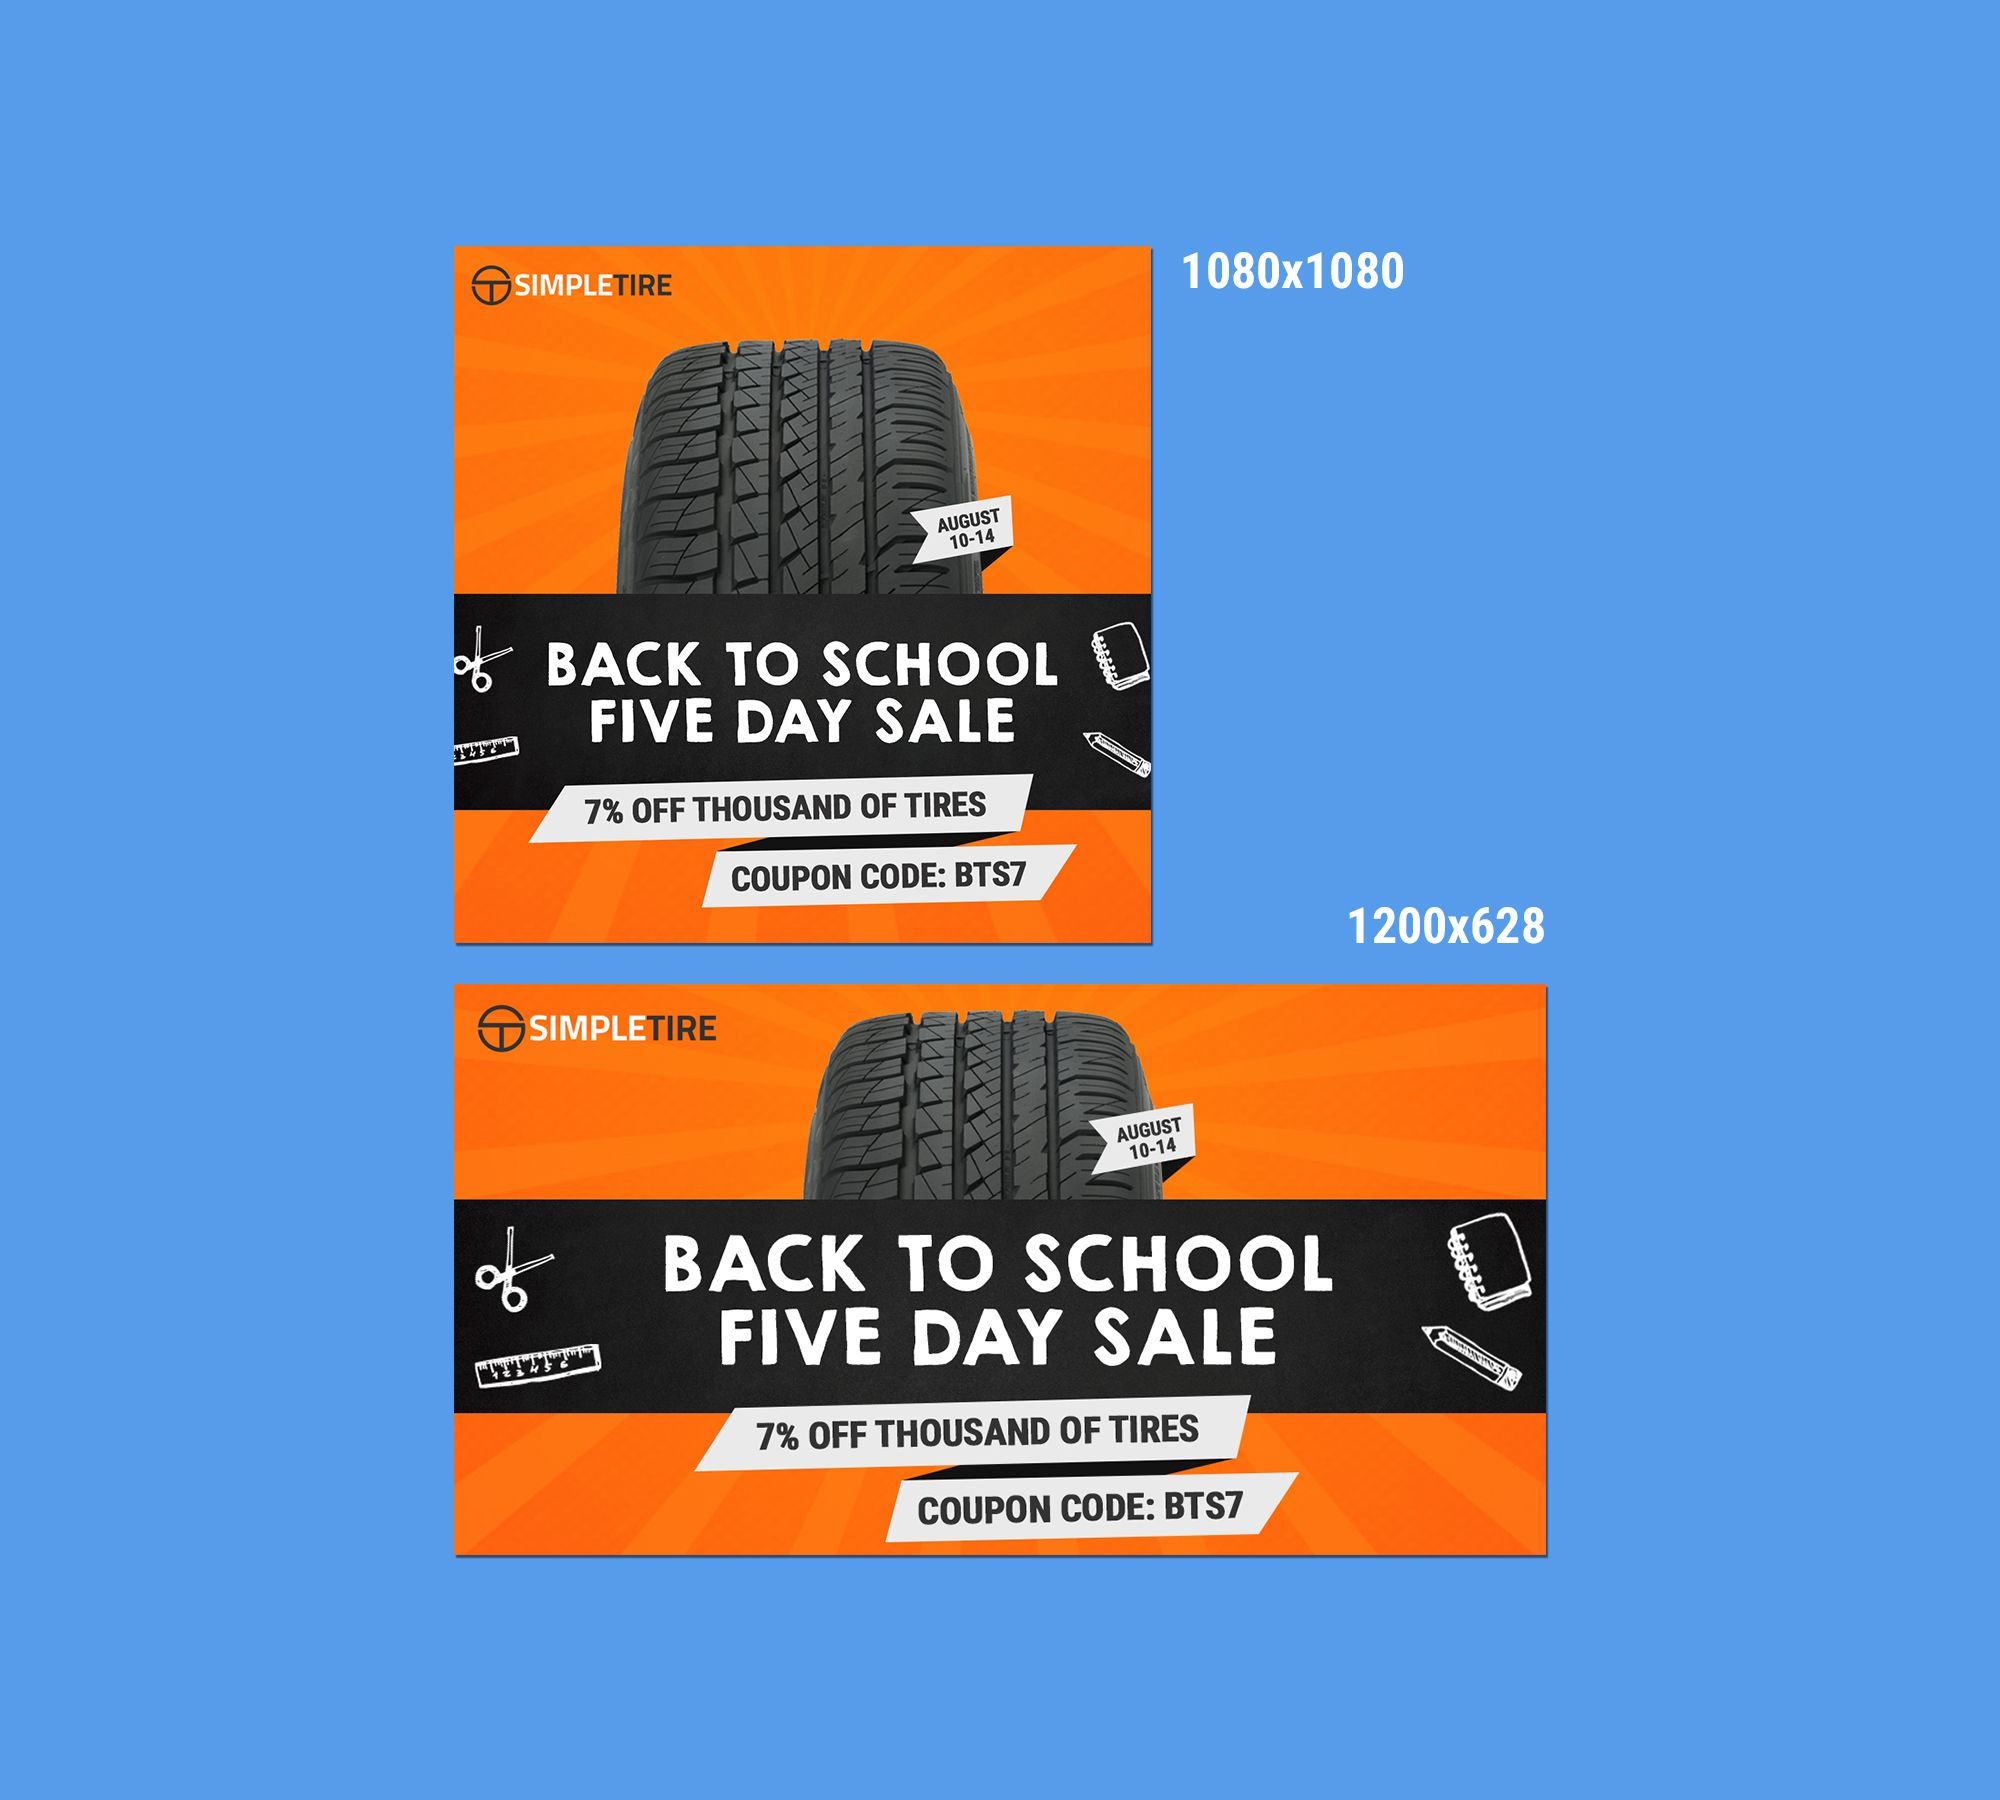 Simple Tire Banner Ad Banner Ad Design By Renzter Desisng